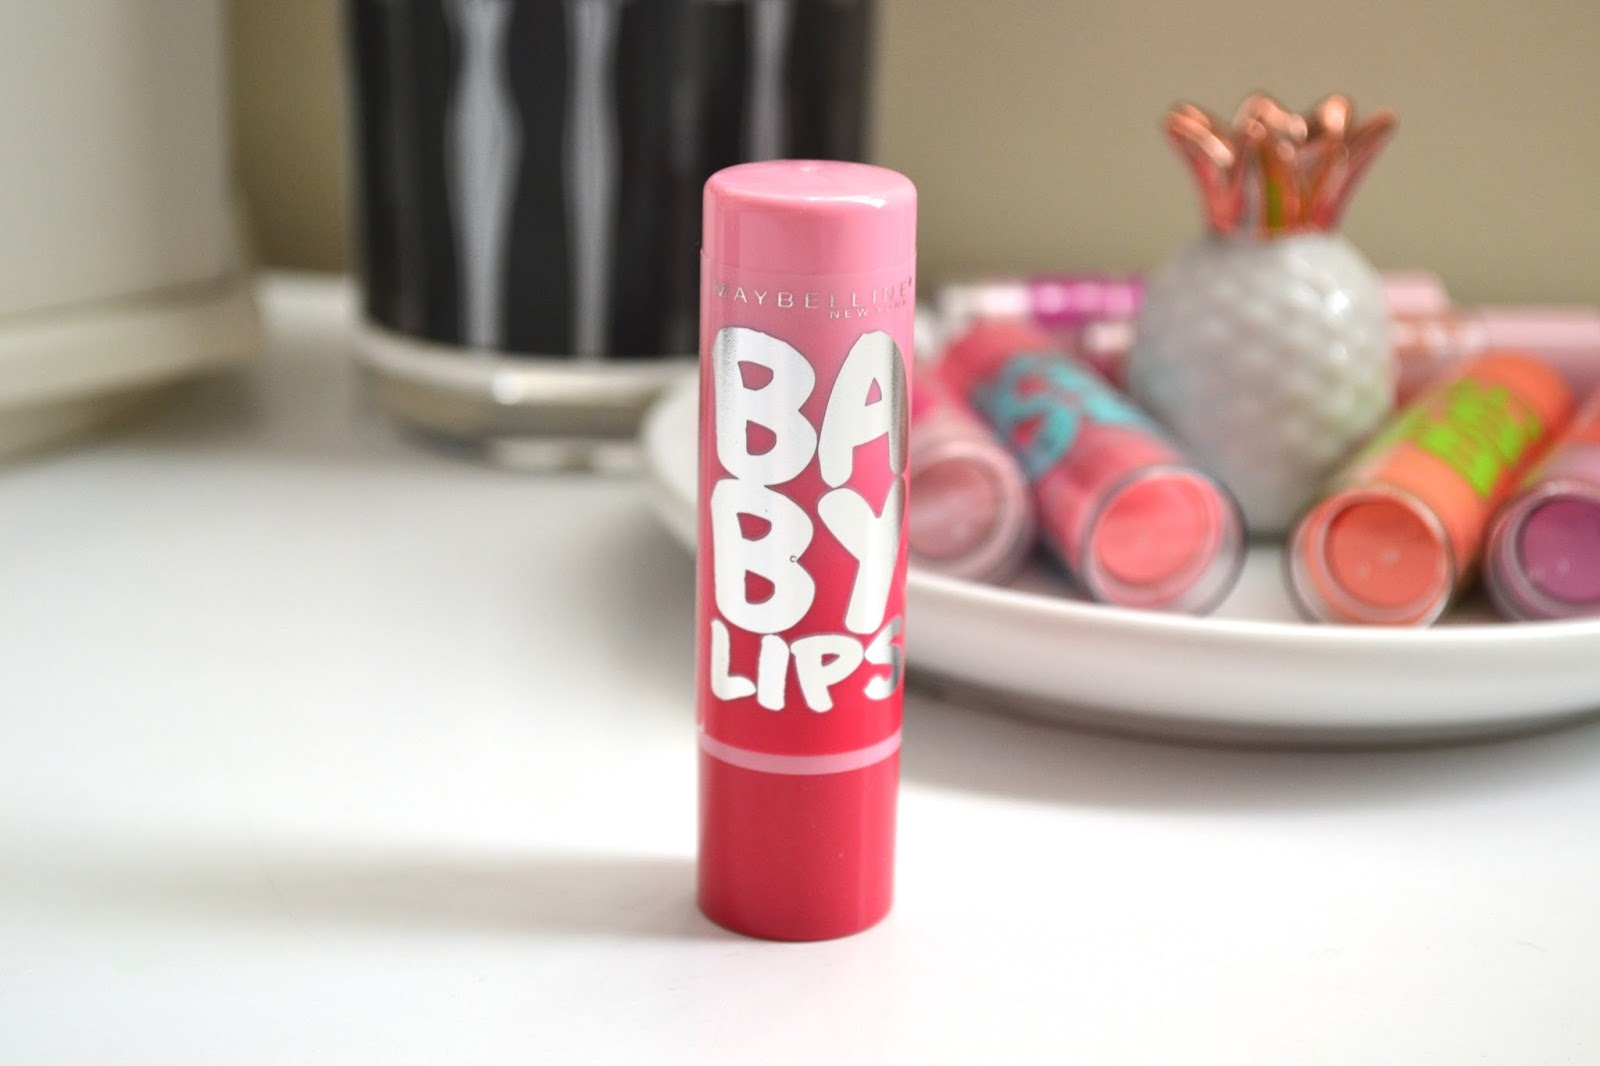 Aquaheart: Maybelline Baby Lips Glow Balm - Review